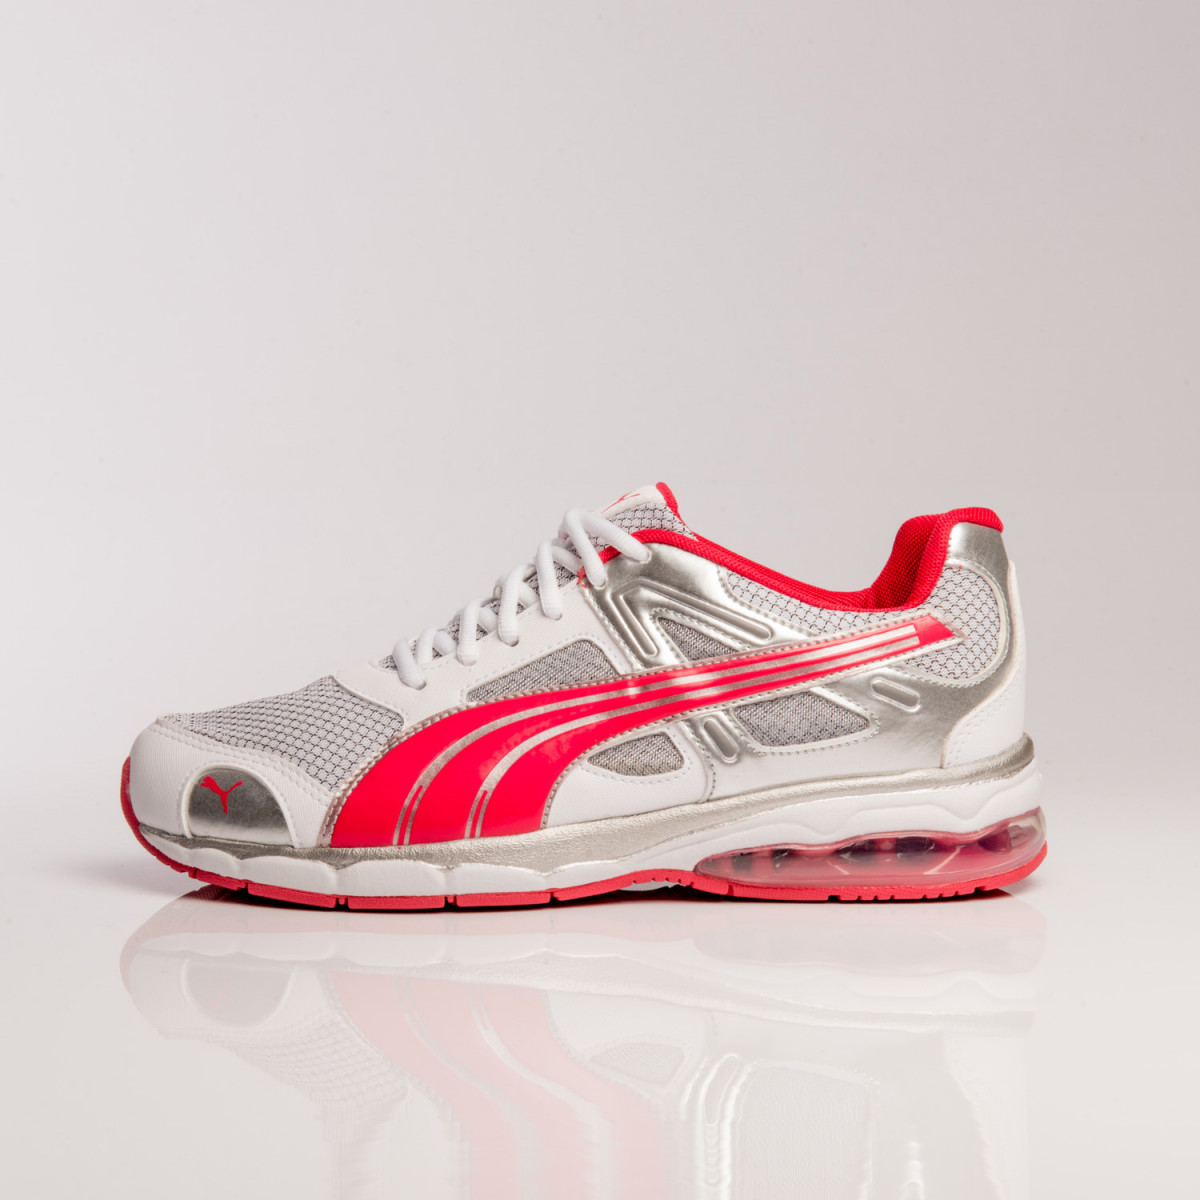 Zapatillas Puma Airbag Md Dcx Wns